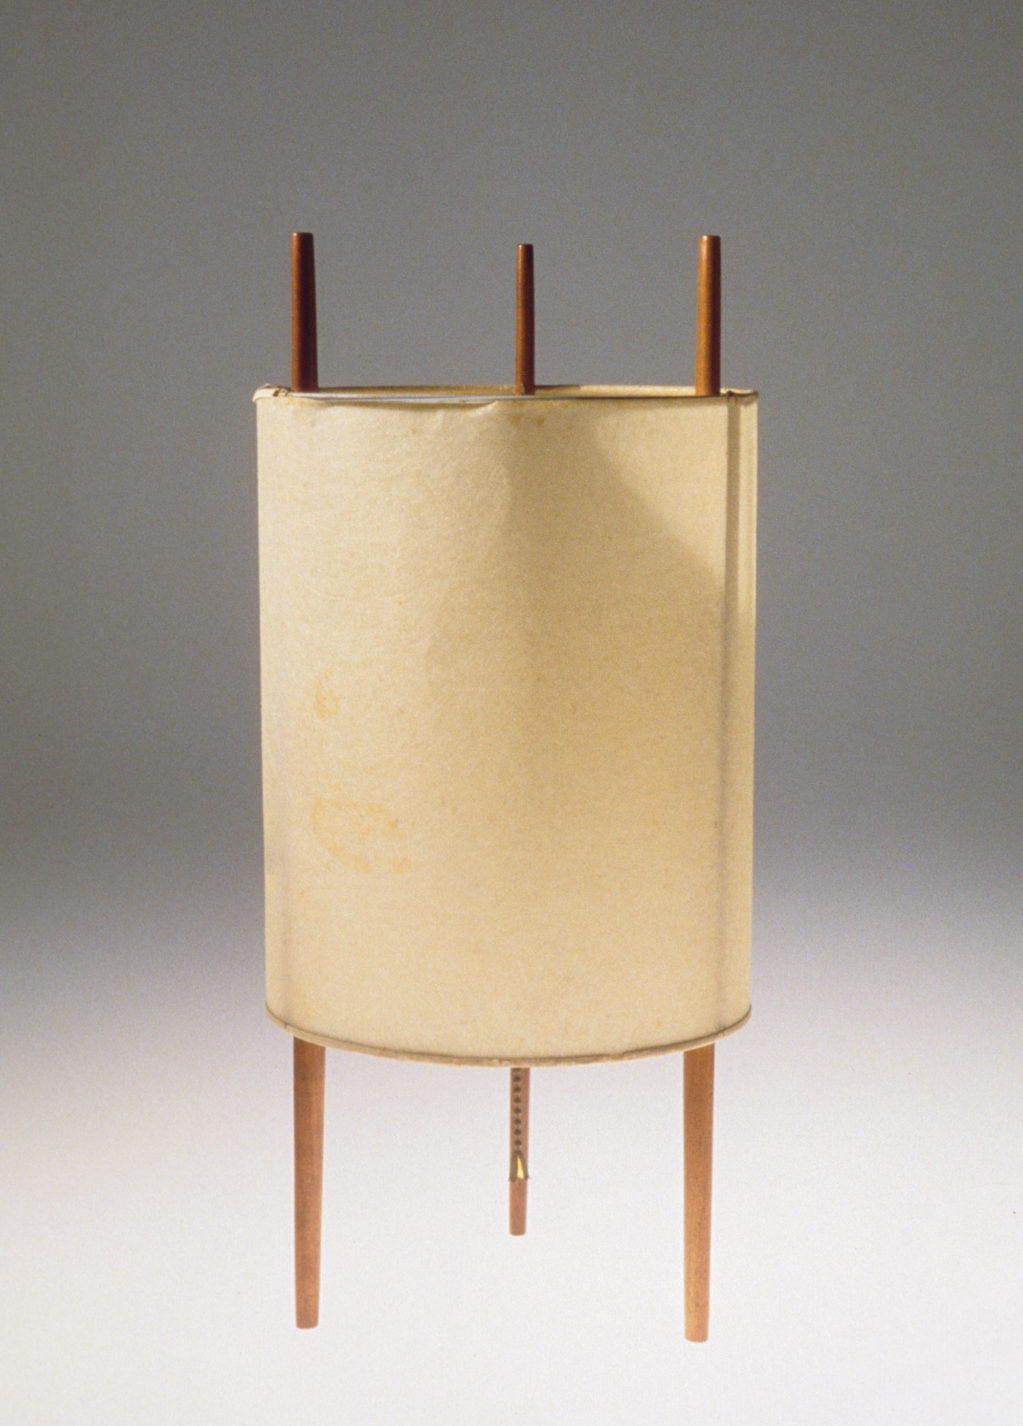 Lamp made with three vertical wooden sticks surrounded by a cylindrical lamp shade.